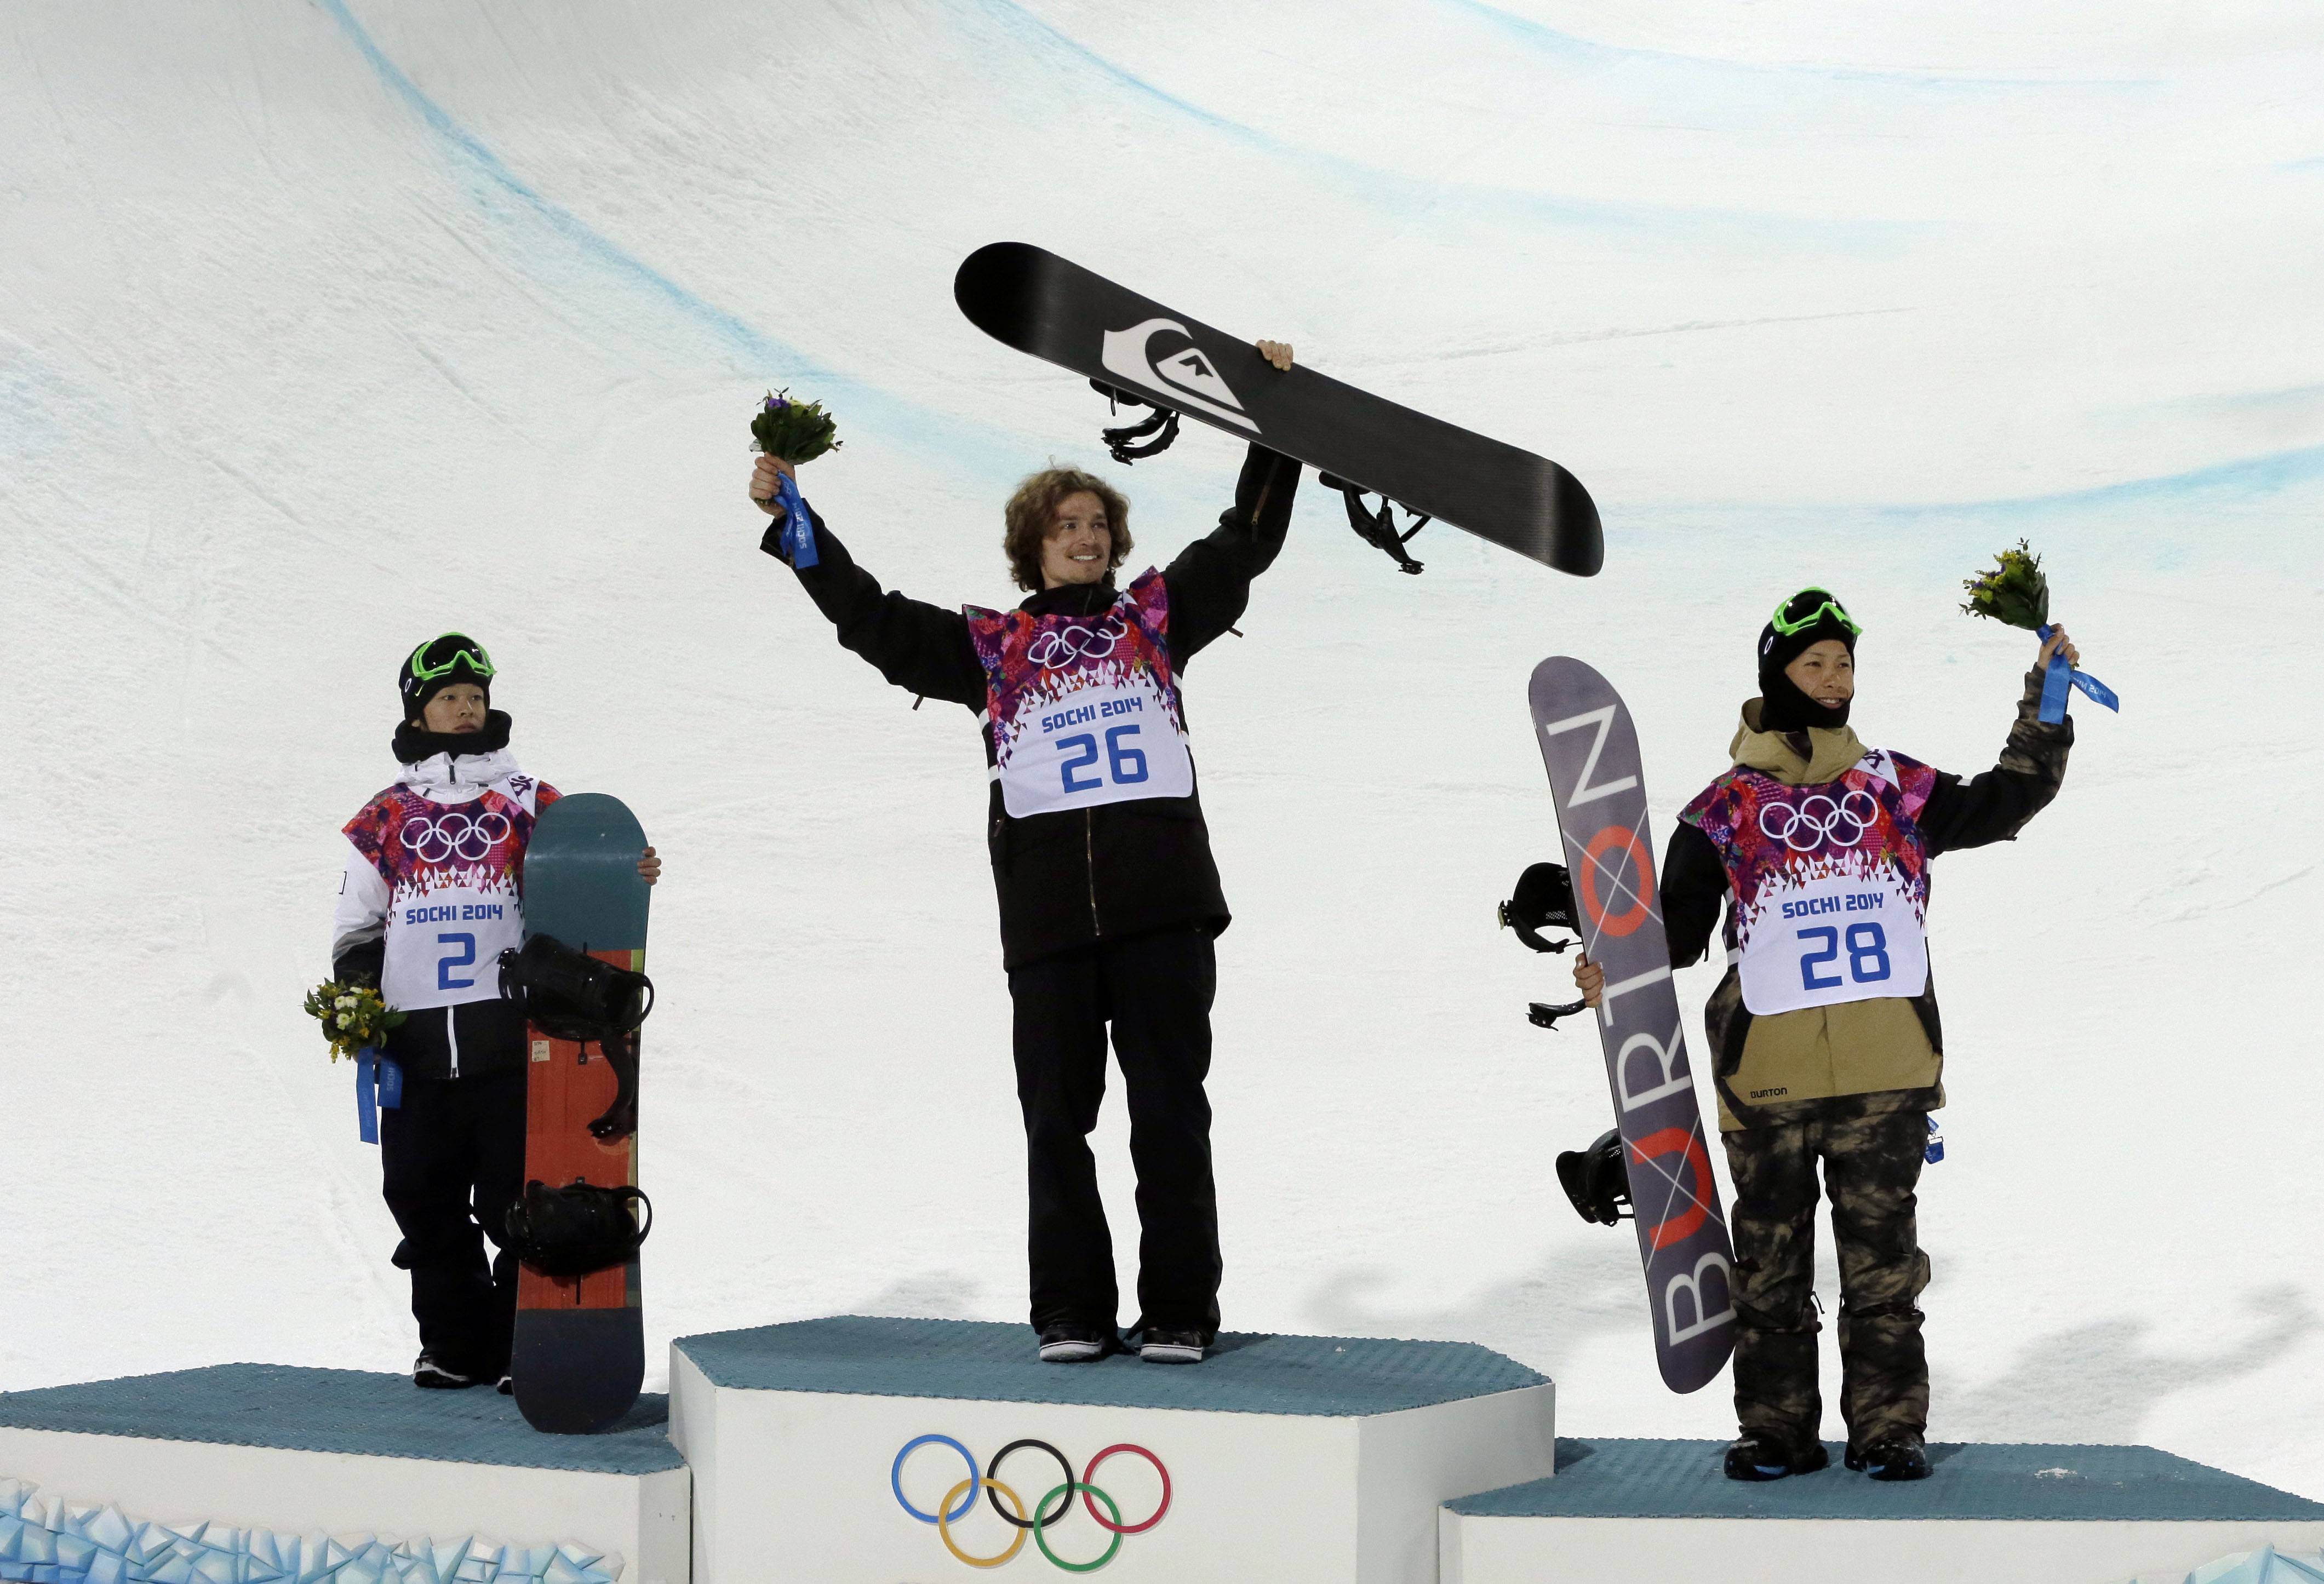 Switzerland's Iouri Podladtchikov celebrates on the podium with silver medalist  Ayumu Hirano of Japan, left, and bronze medalist Taku Hiraoka, also of Japan, after he won the gold medal in the men's snowboard halfpipe final.